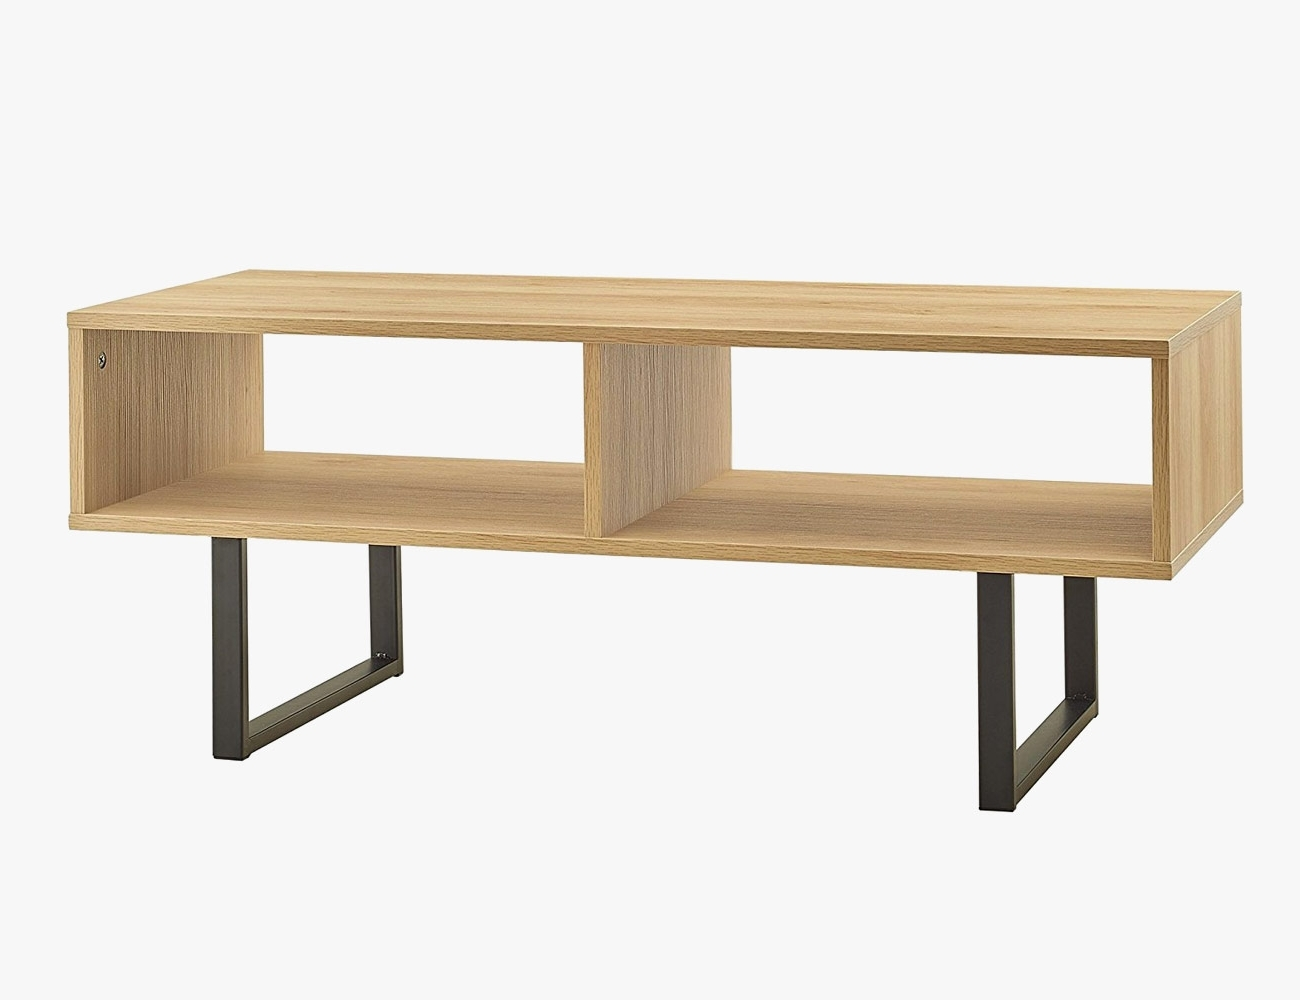 The Best Coffee Tables For Every Budget And Style Intended For Well Known Shroom Large Coffee Tables (View 13 of 20)